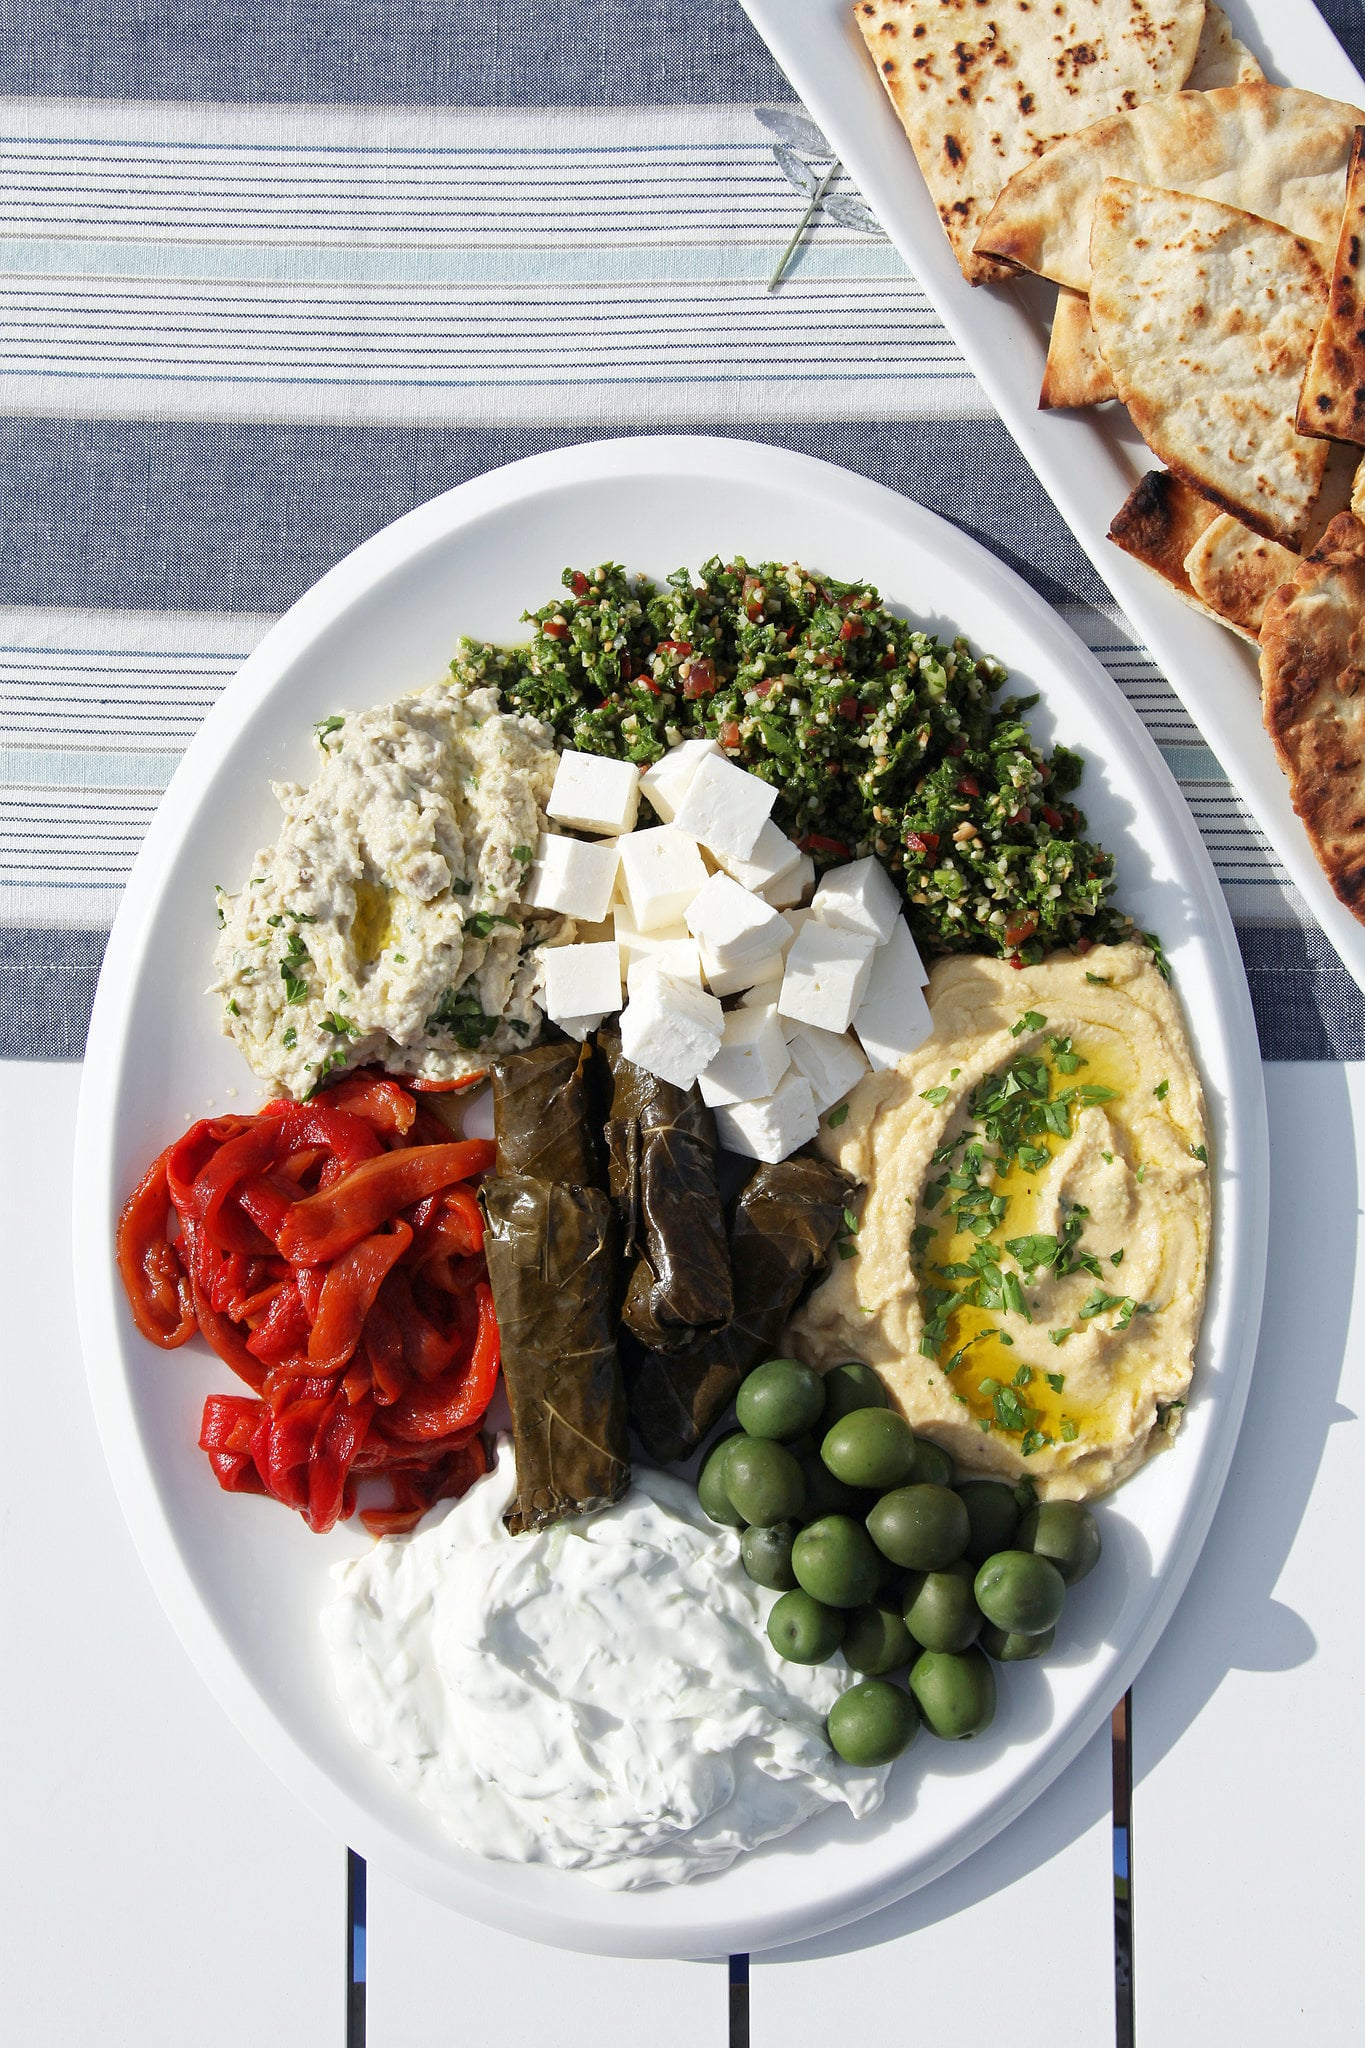 Mezze Platter With Grilled Pita